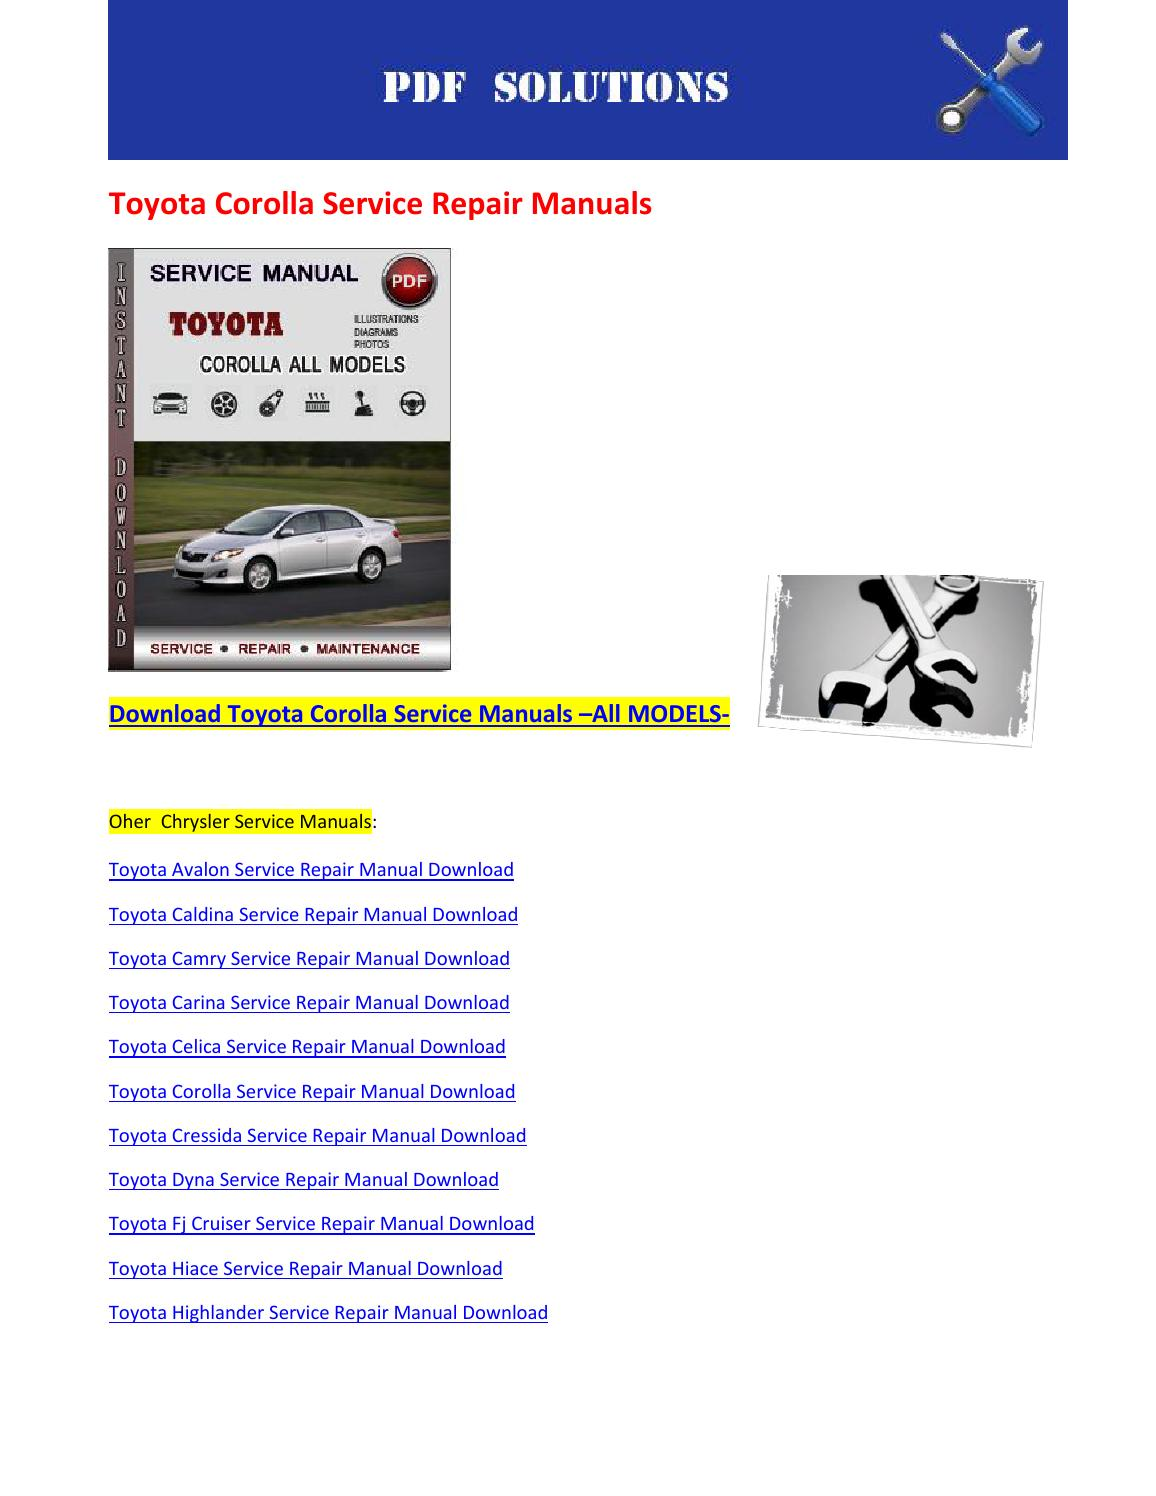 Toyota Sienna Service Manual: Power Seat Motor Circuit